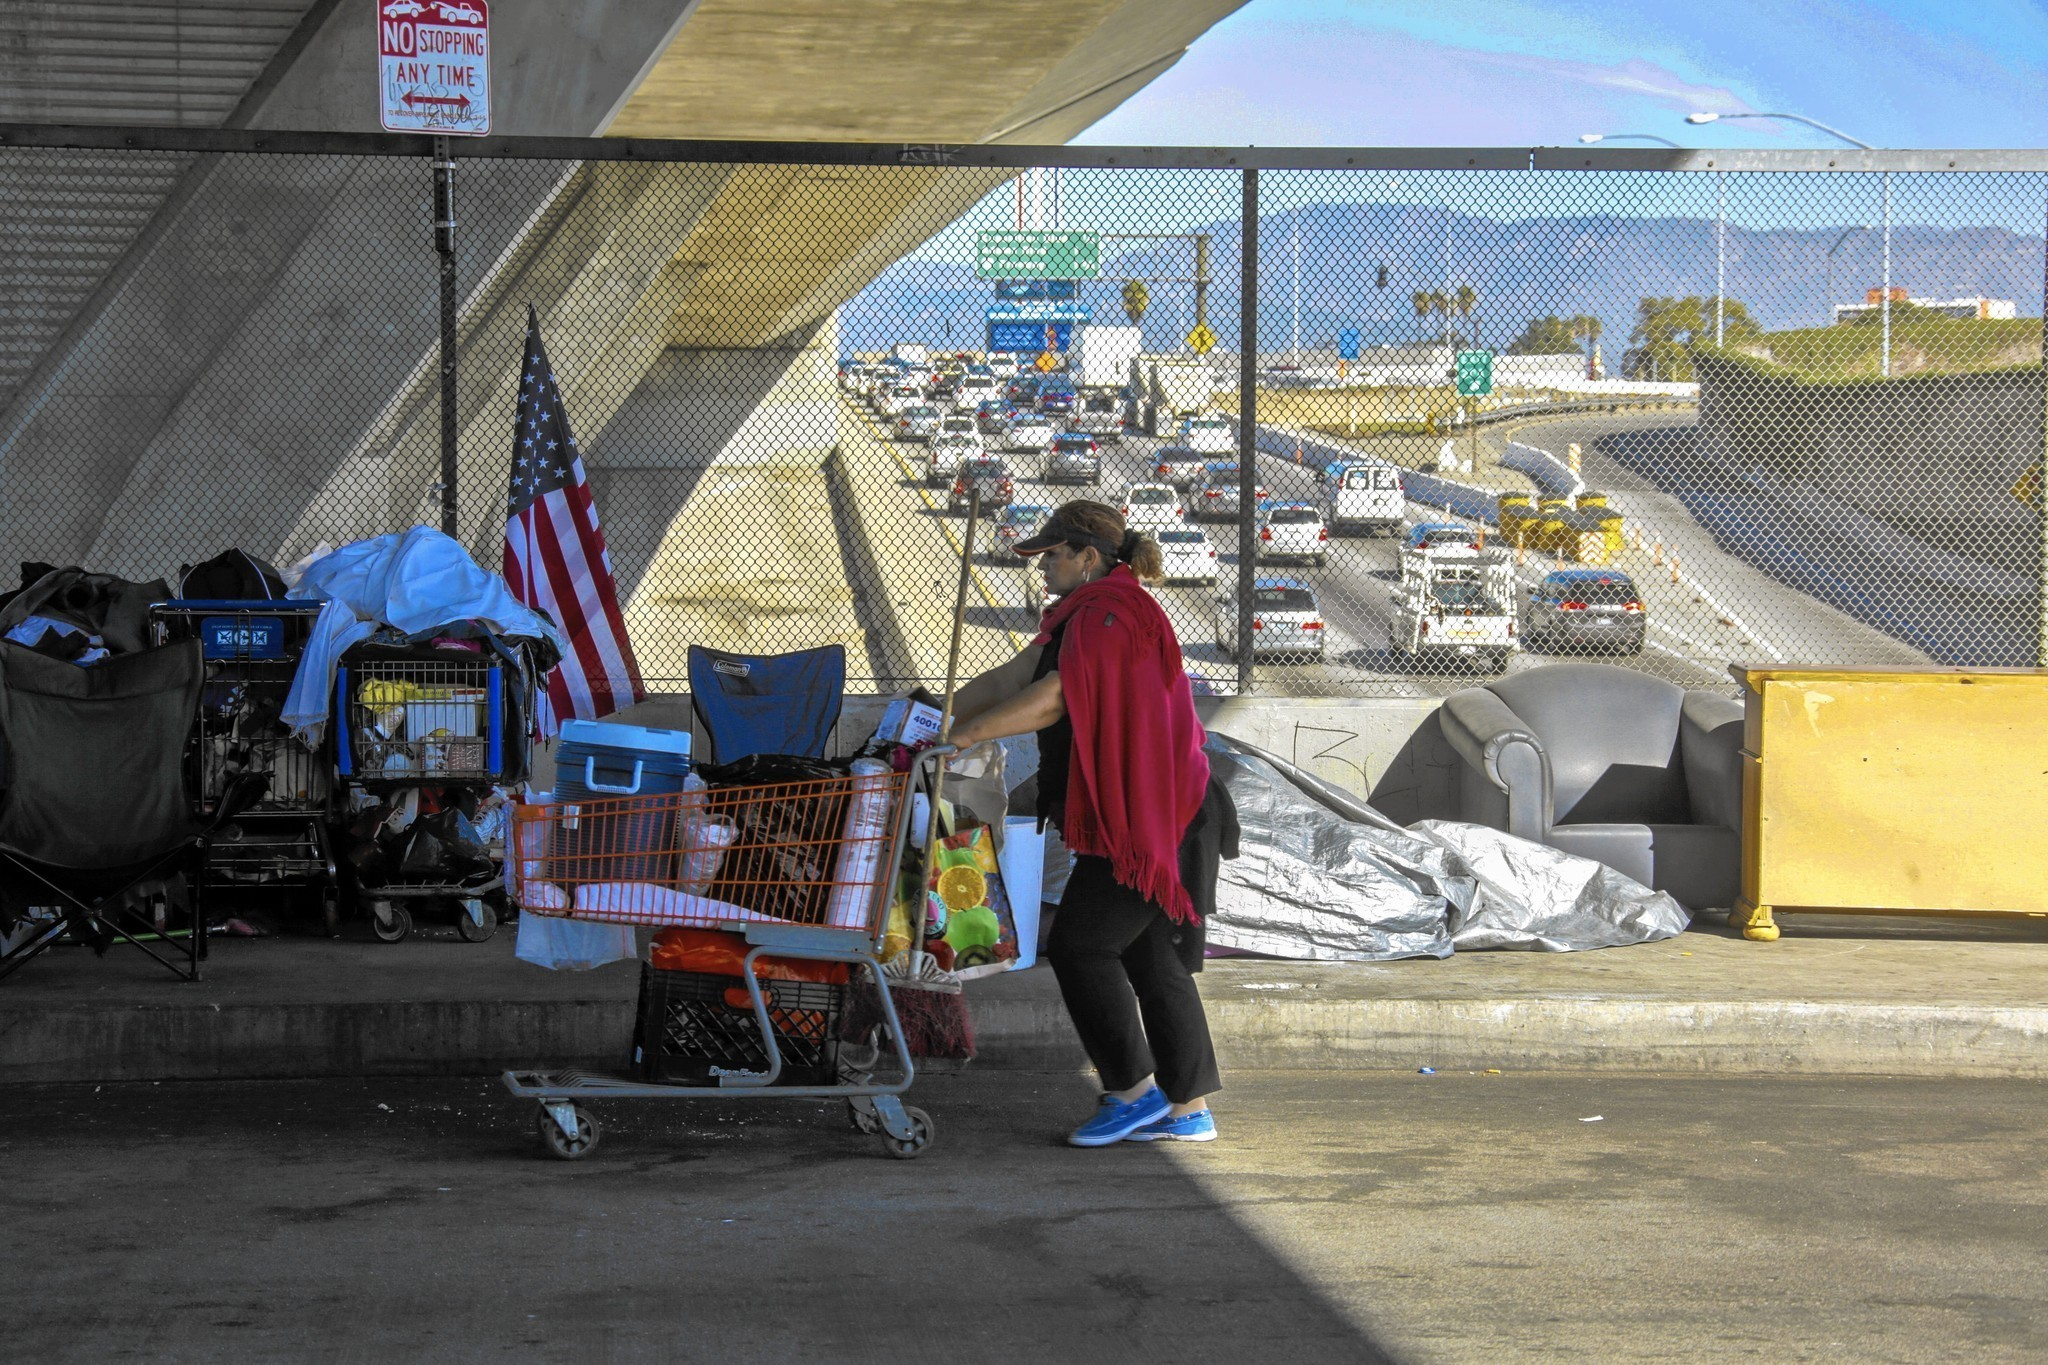 homeless population The homeless population in san diego city and county is now the fourth largest in the country, according to the us department of housing and urban.